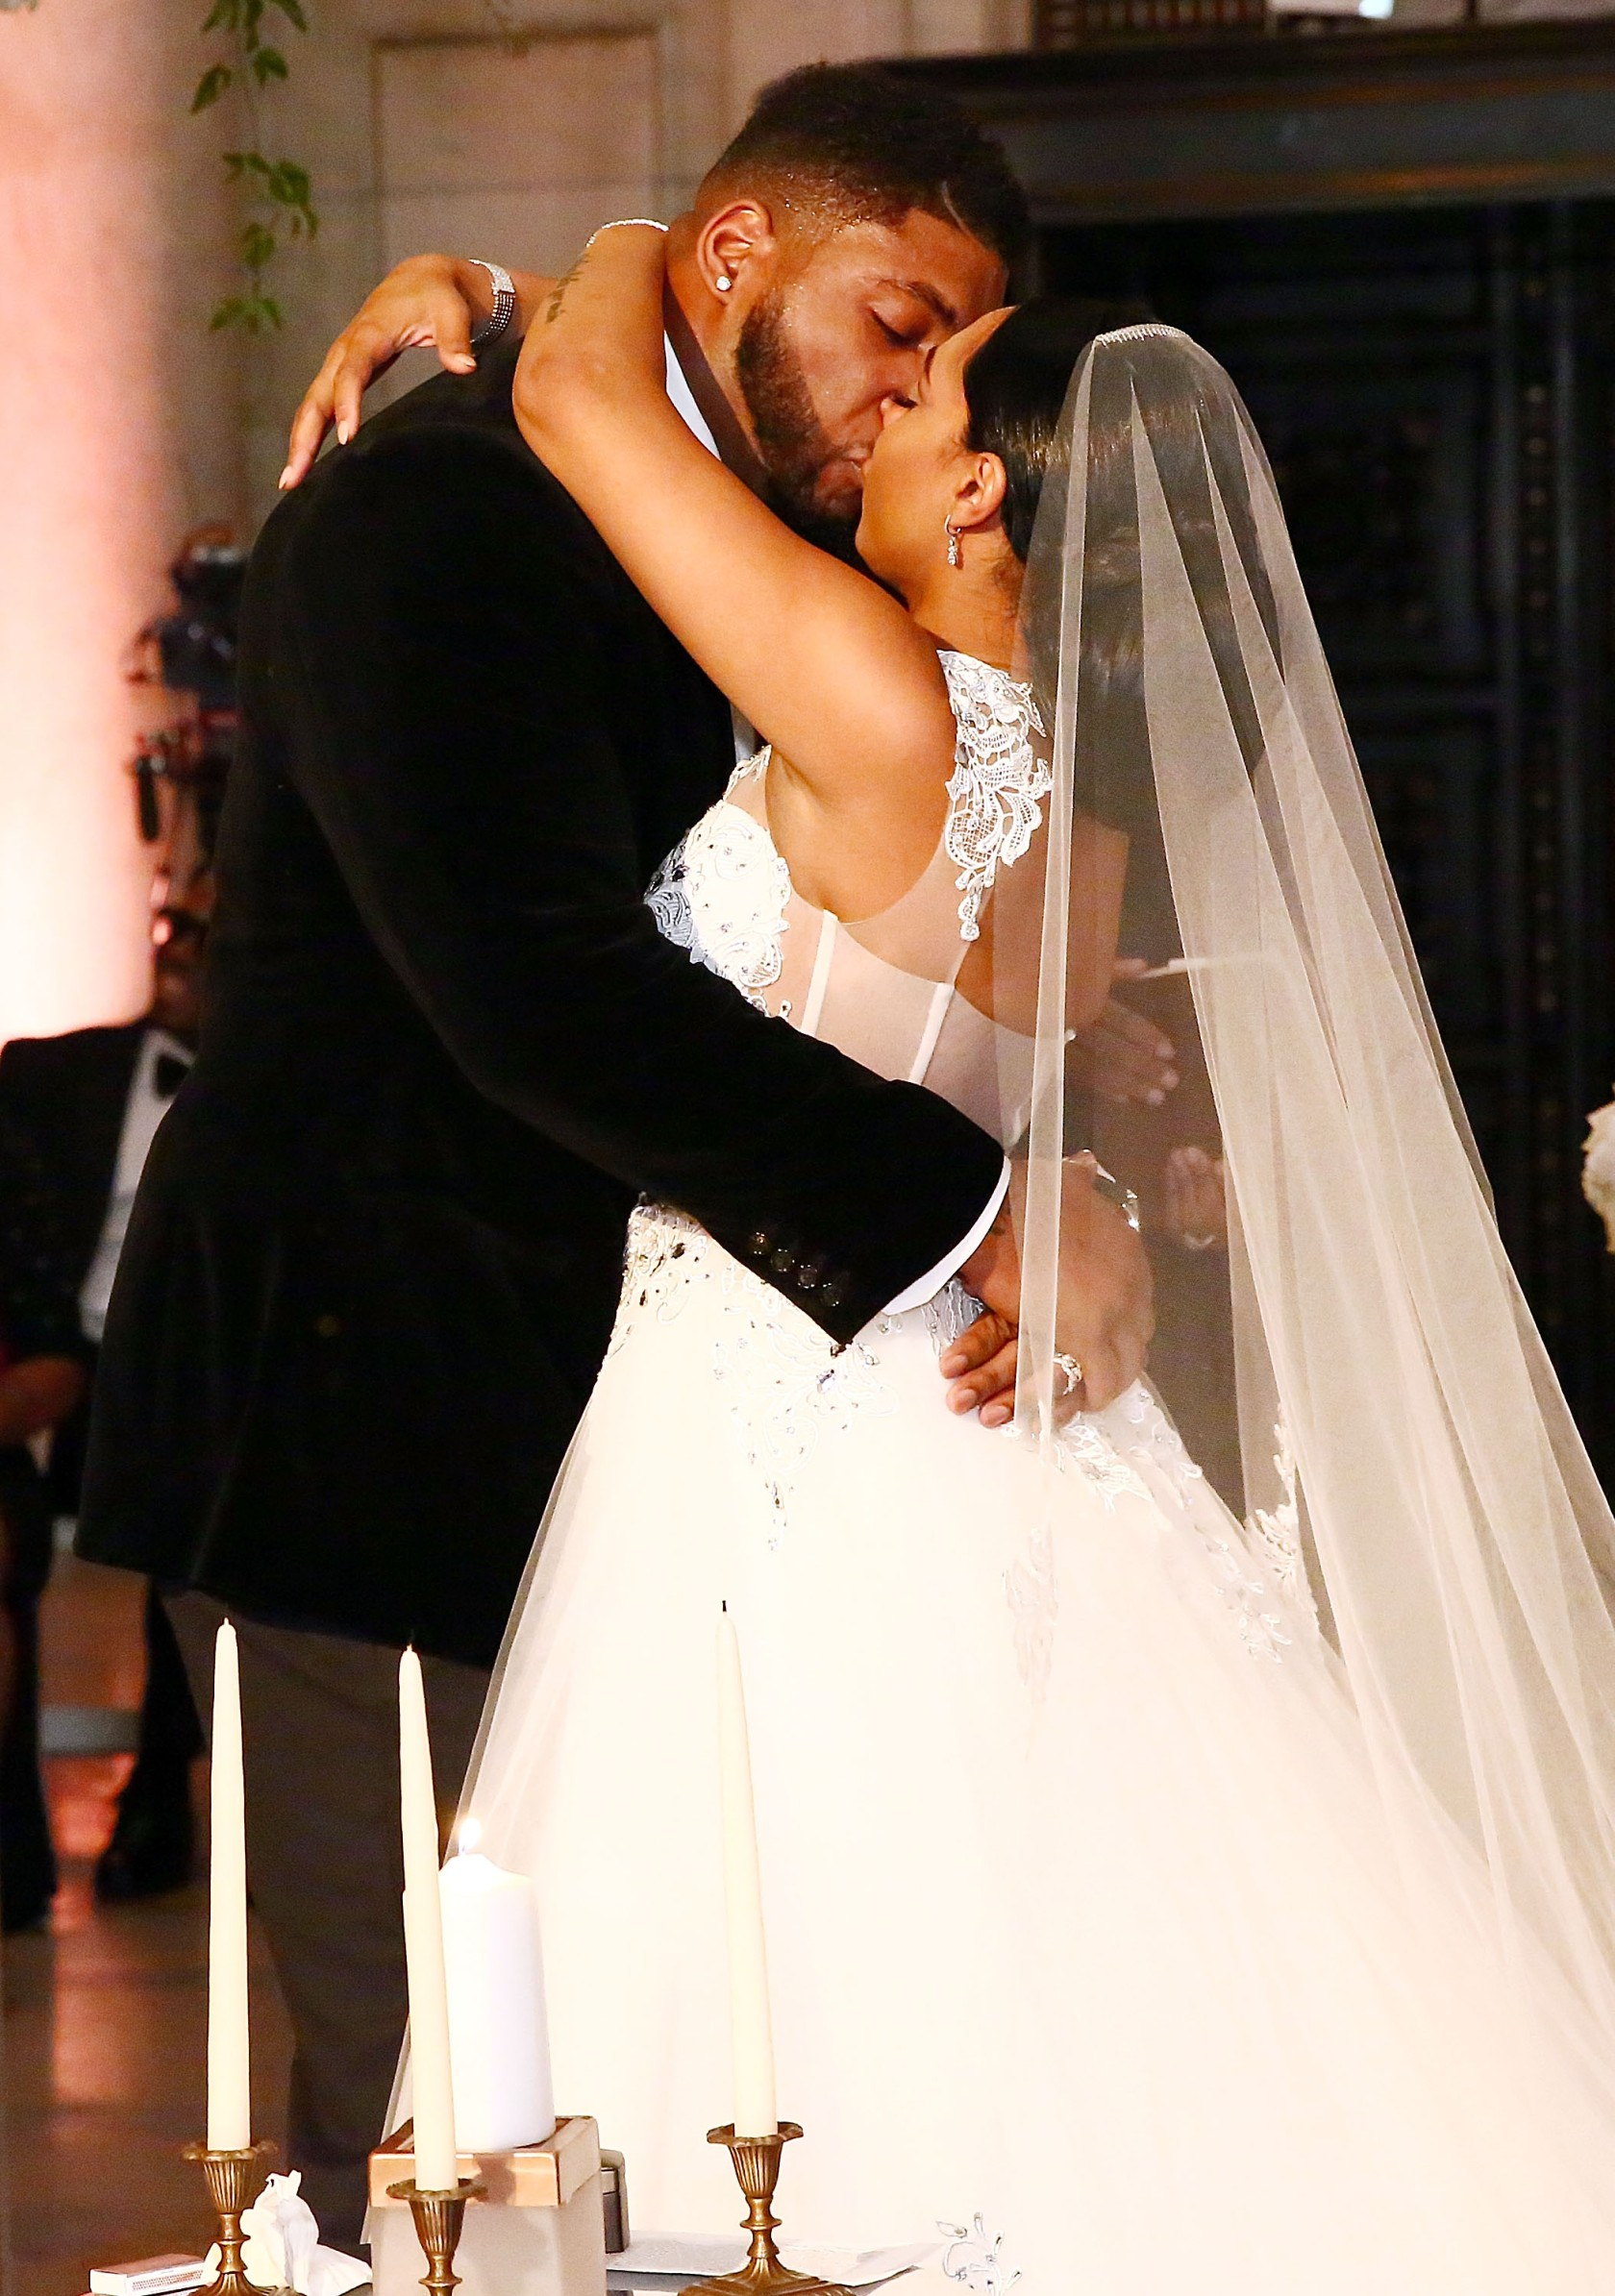 The Knot Dream Wedding - NFL Player Devon Still Marries Asha Joyce